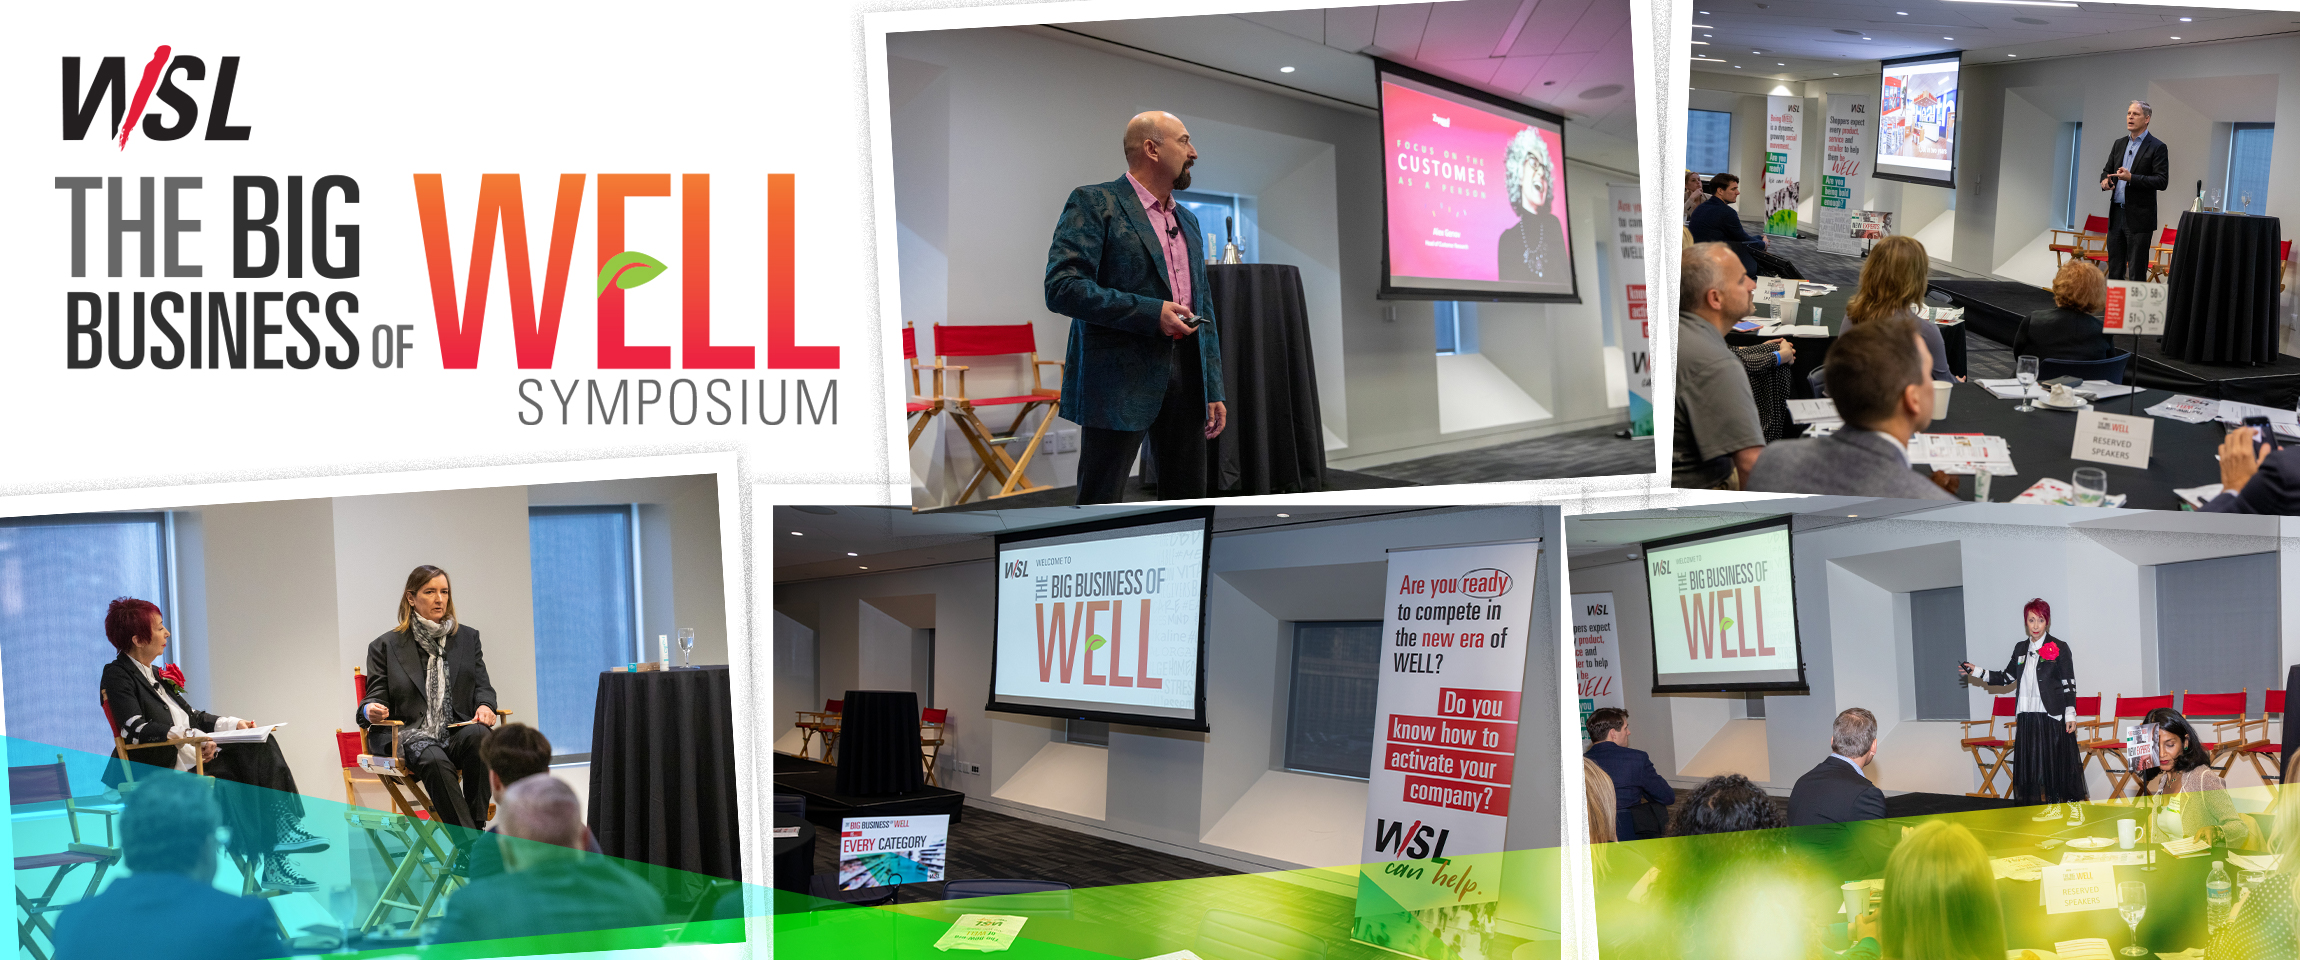 6 Themes in Retail Wellness, from WSL's WELL Symposium